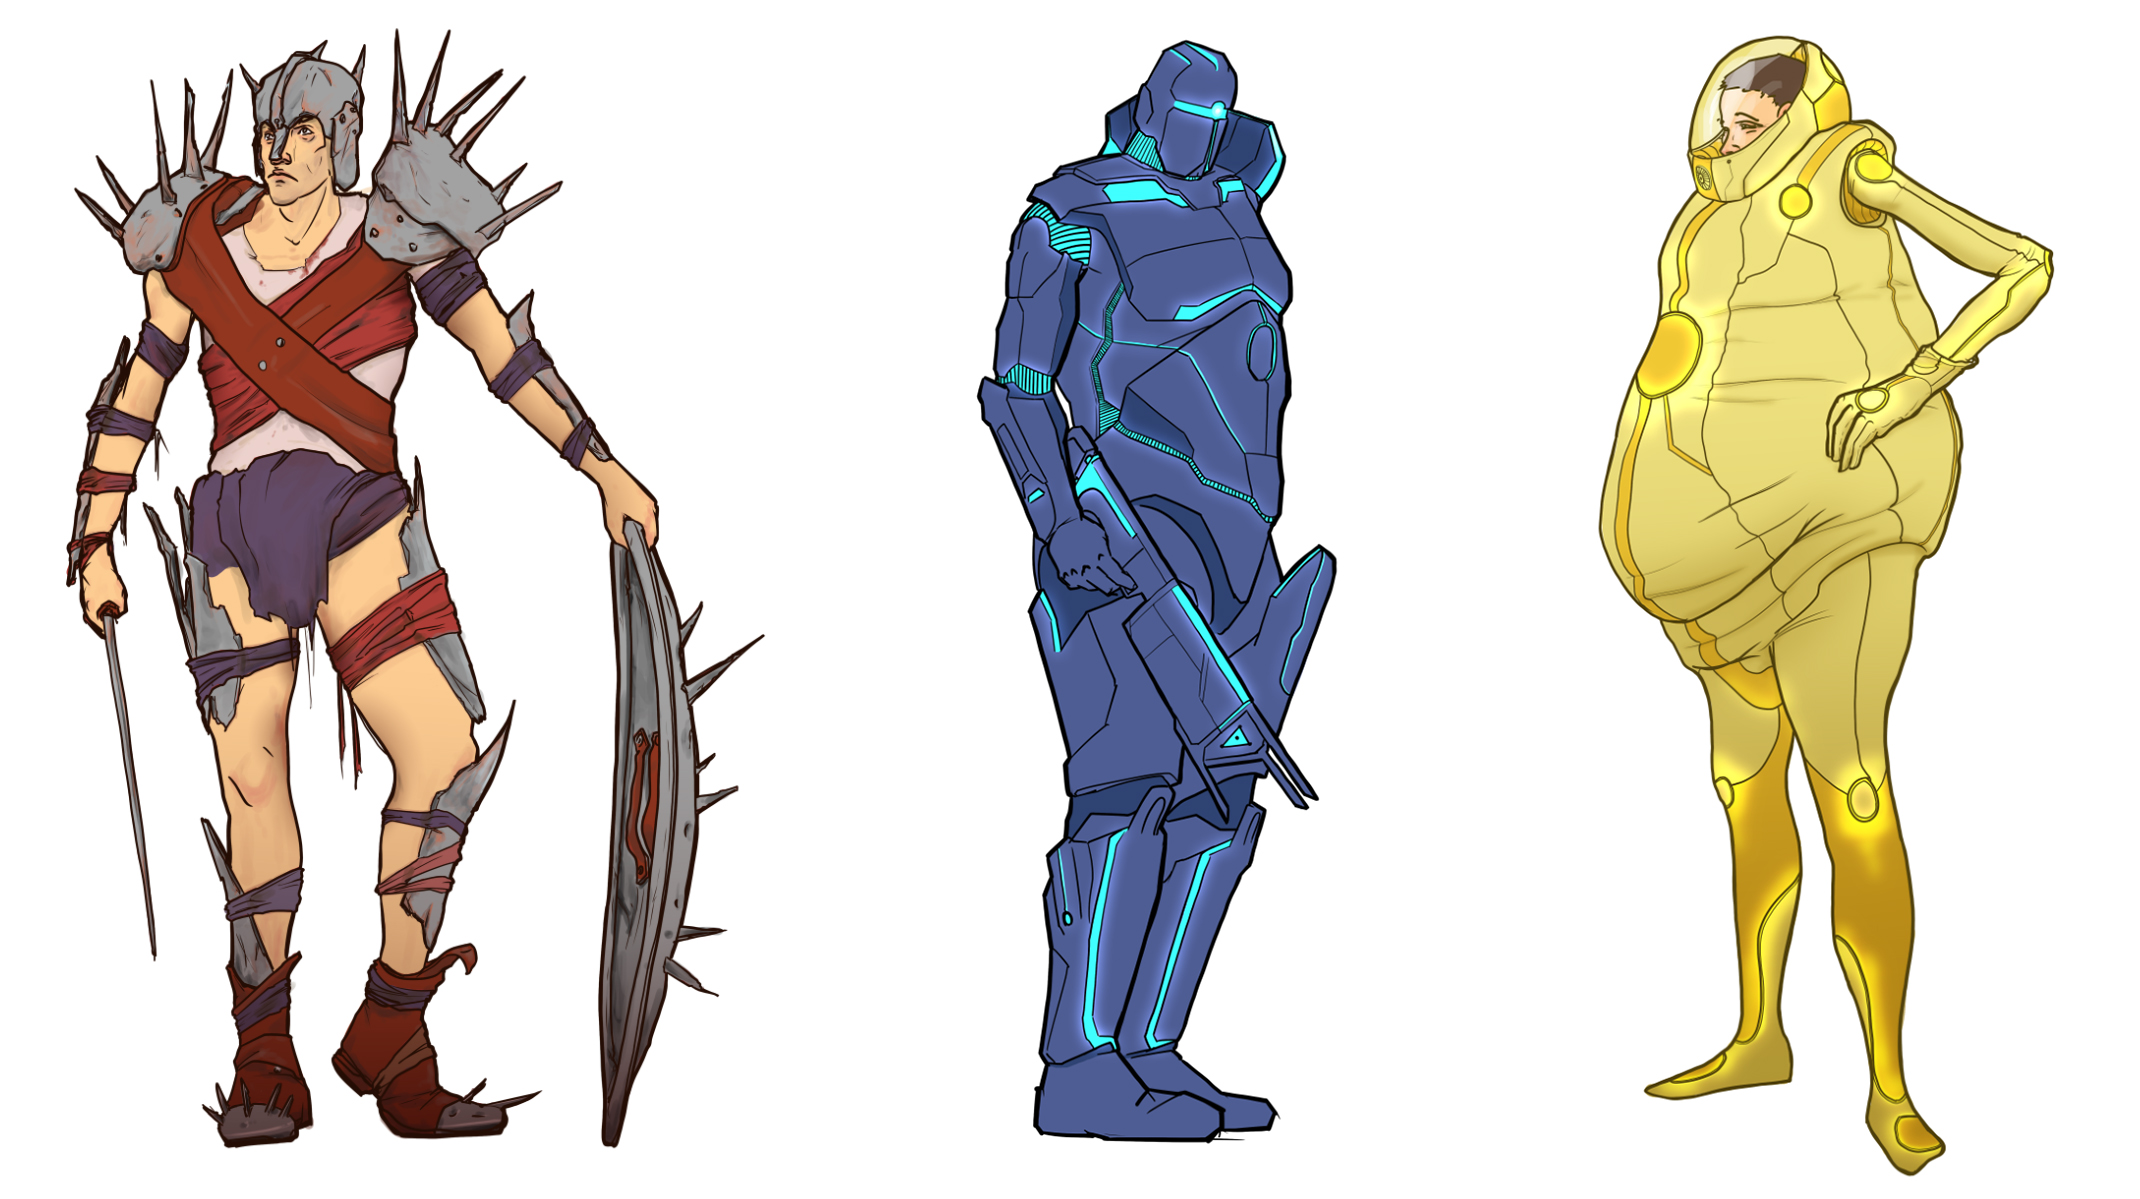 Concept art for the Tribes, the Garrison and the Arrived